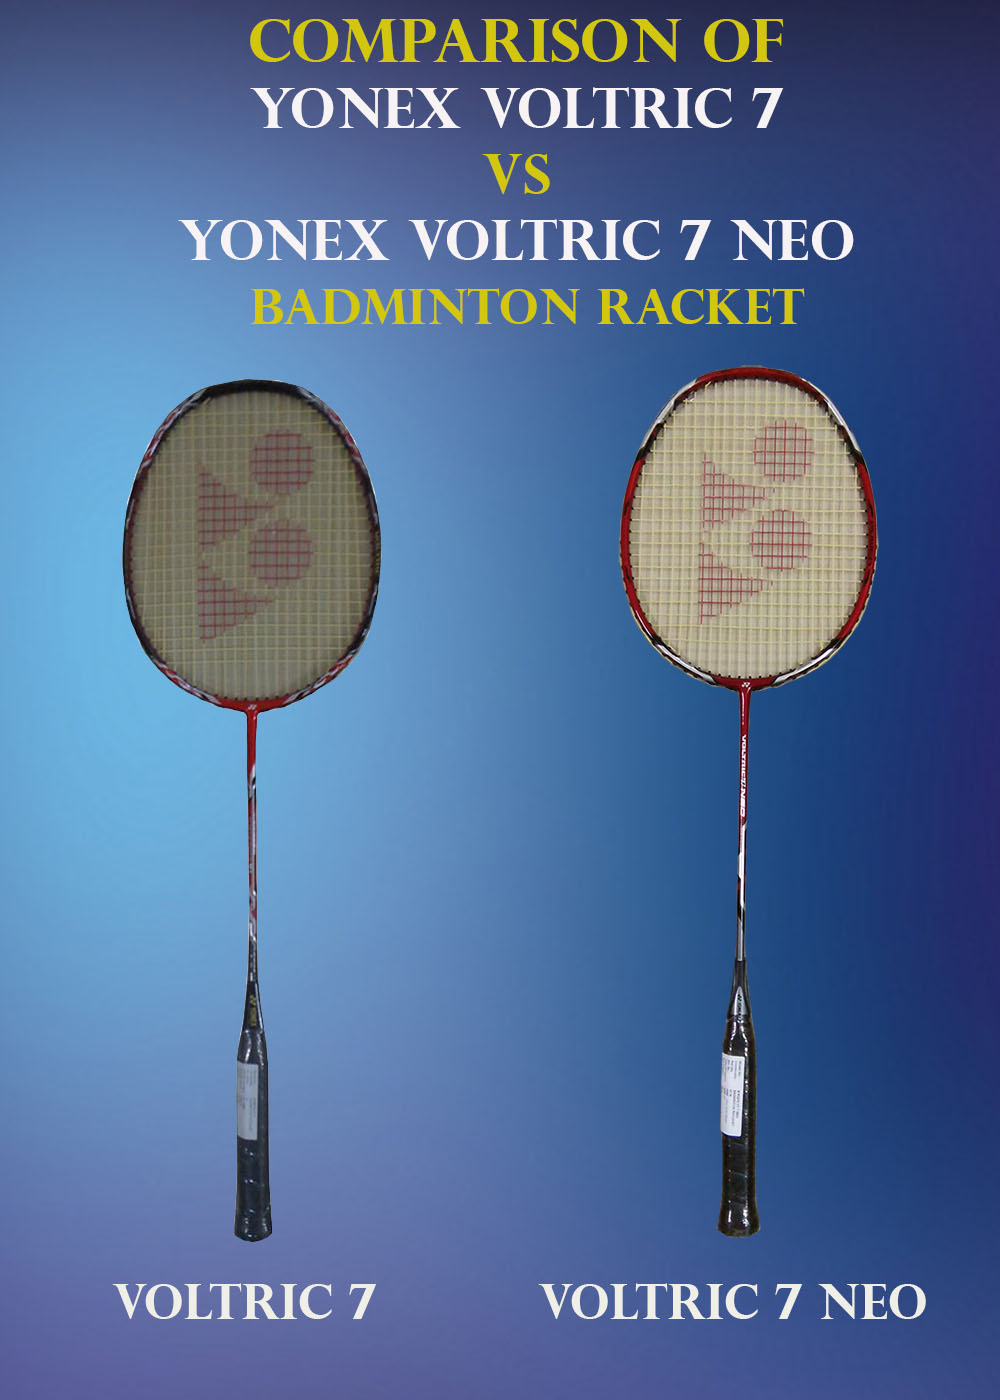 Comparison of Yonex Voltric 7 VS Voltric 7 Neo_1